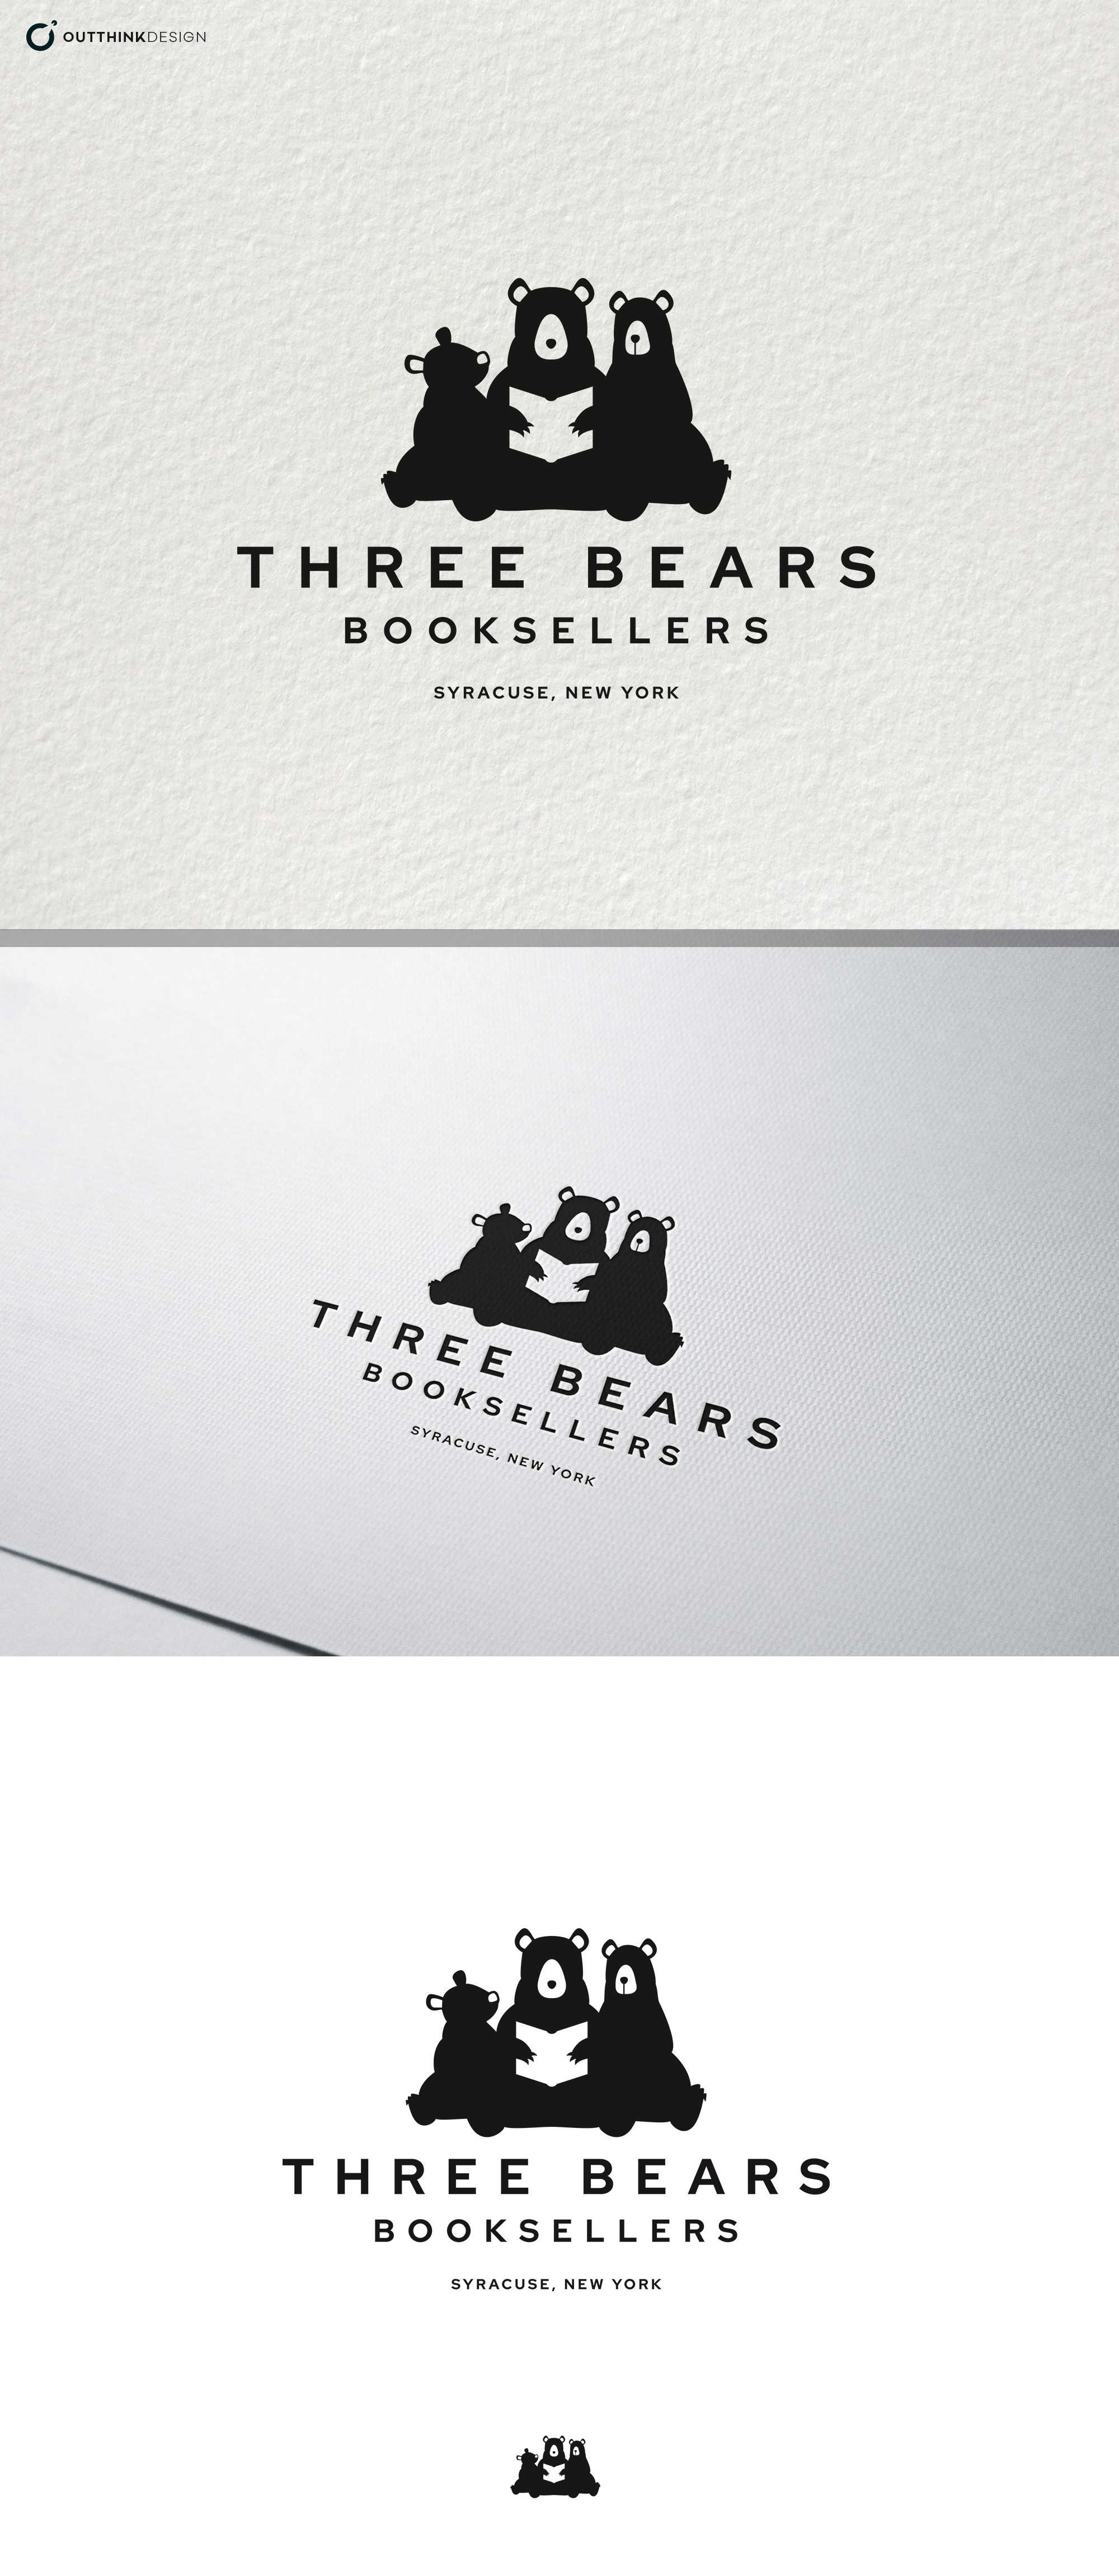 New Logo for Three Bears Booksellers Bookstore